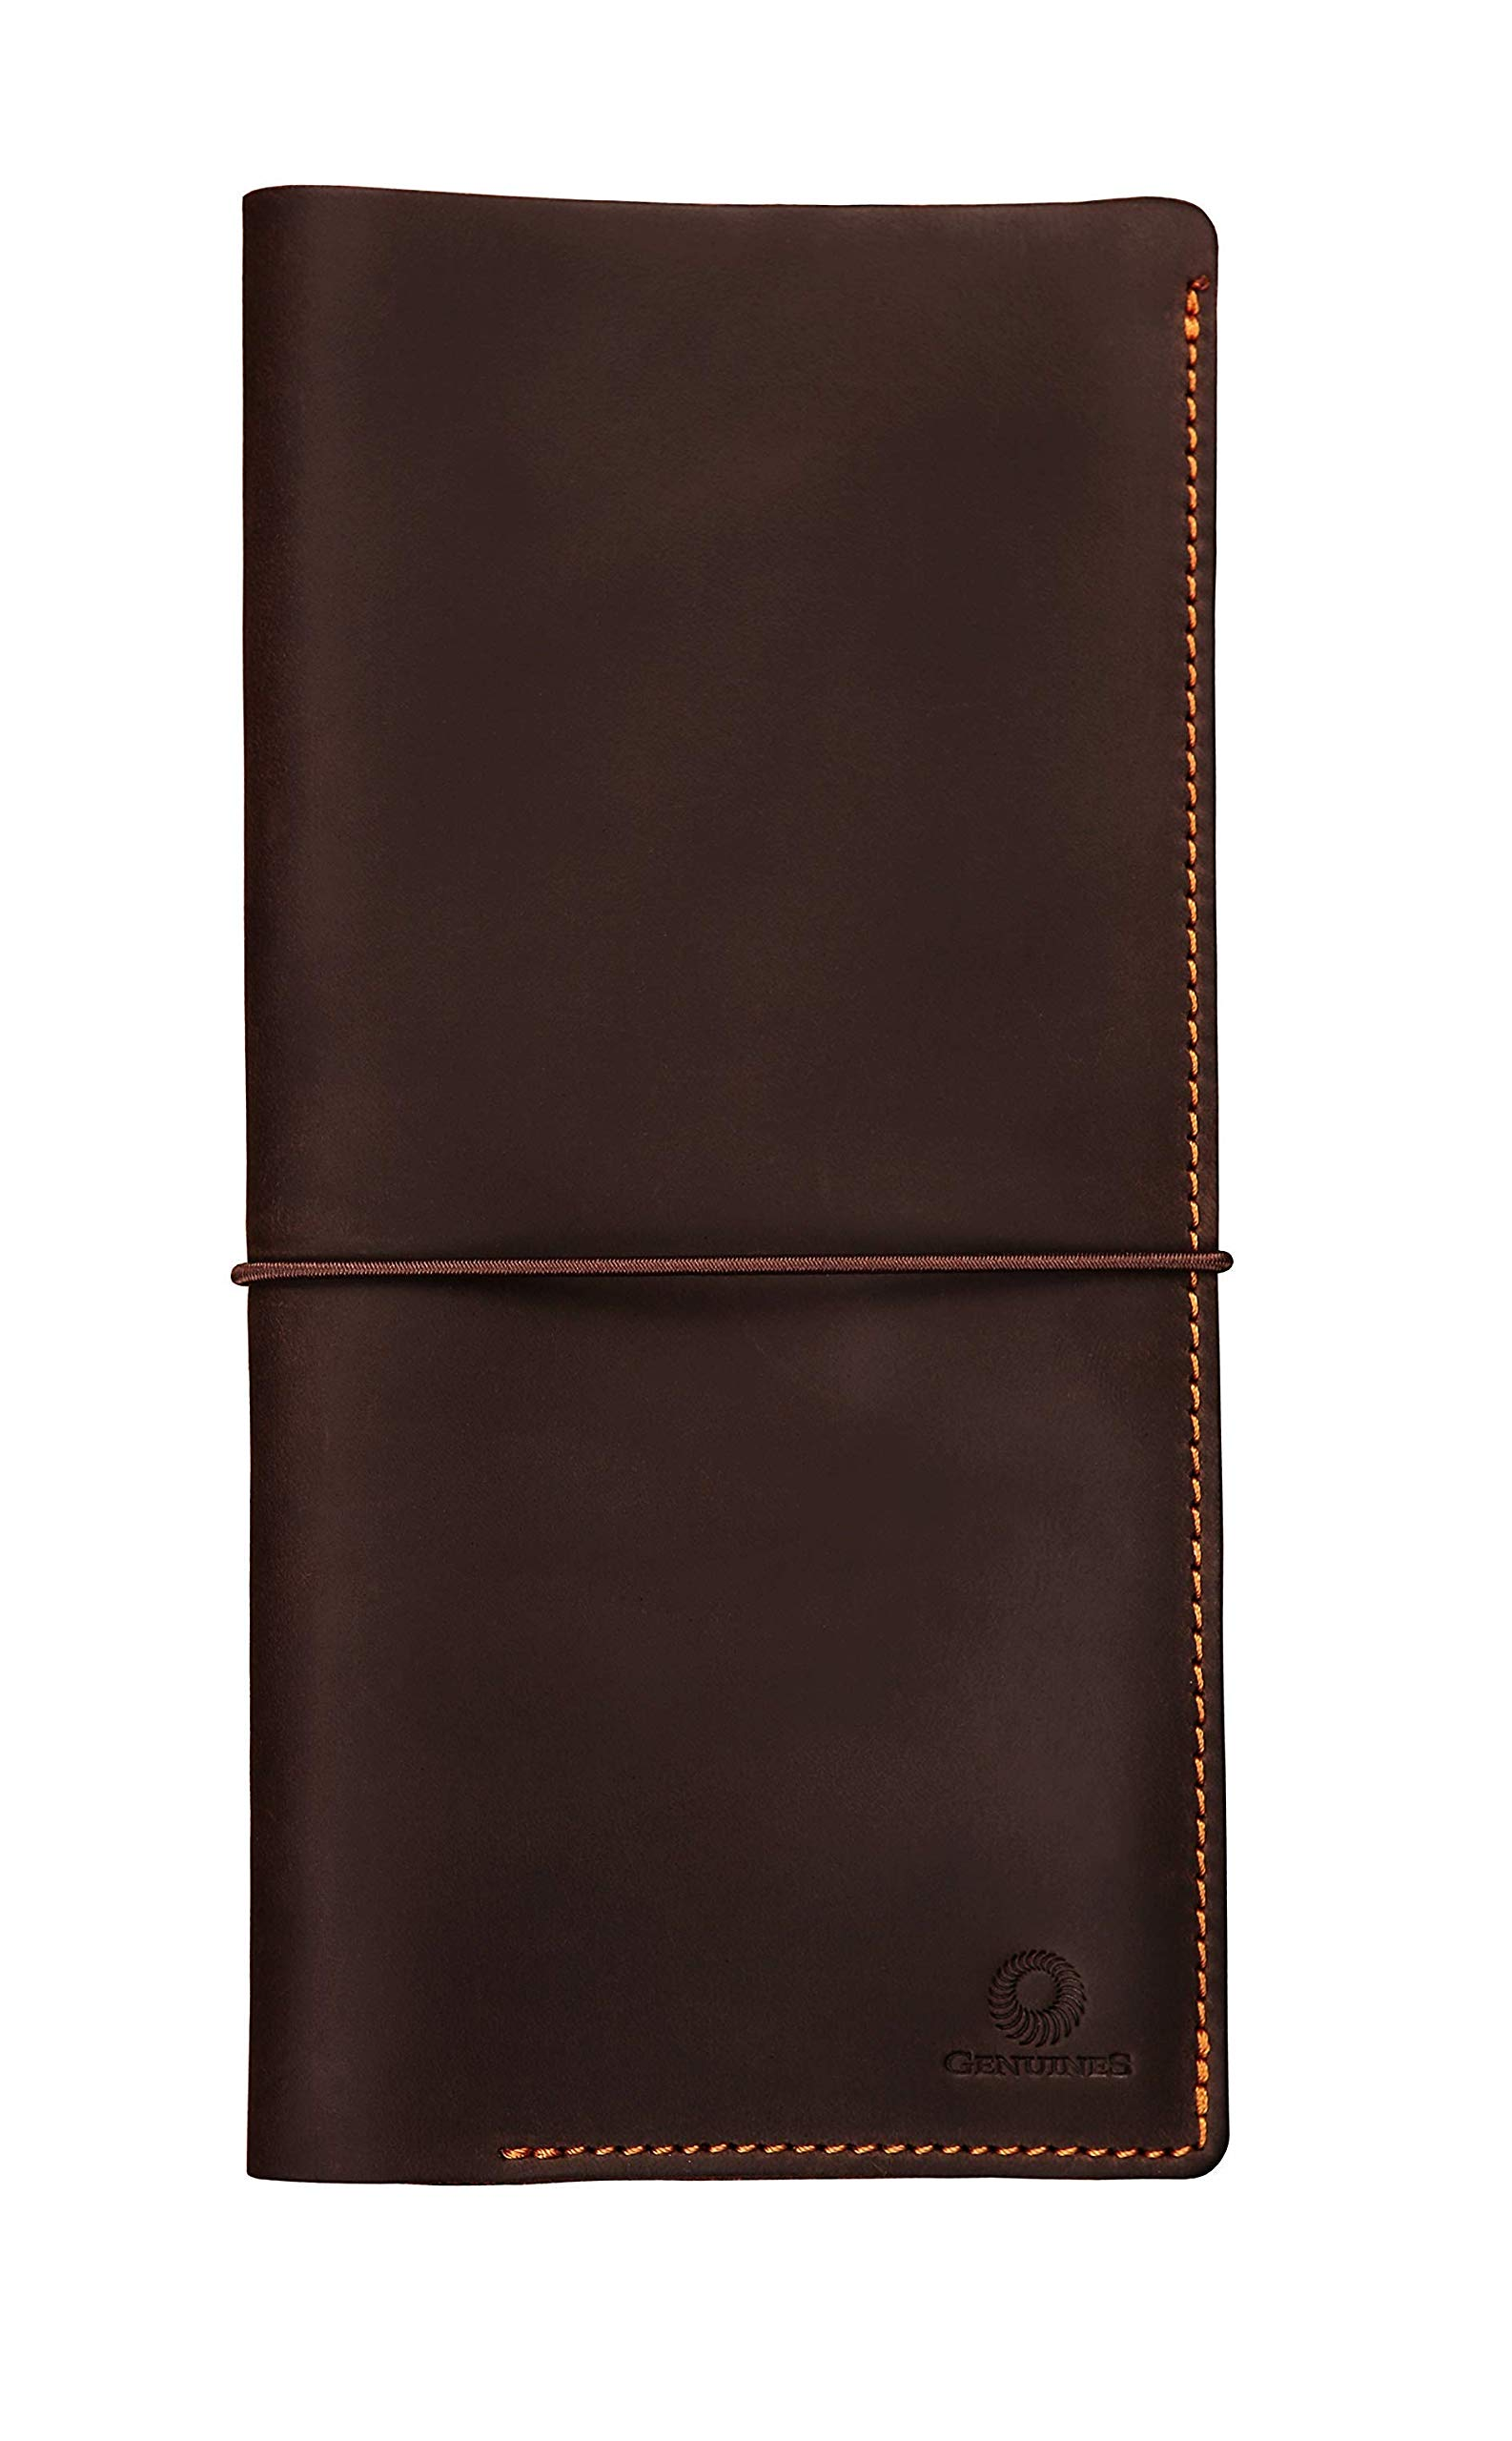 Genuines Long Leather Travel Wallet - Boarding Pass Passport Holder with Strap by Genuines